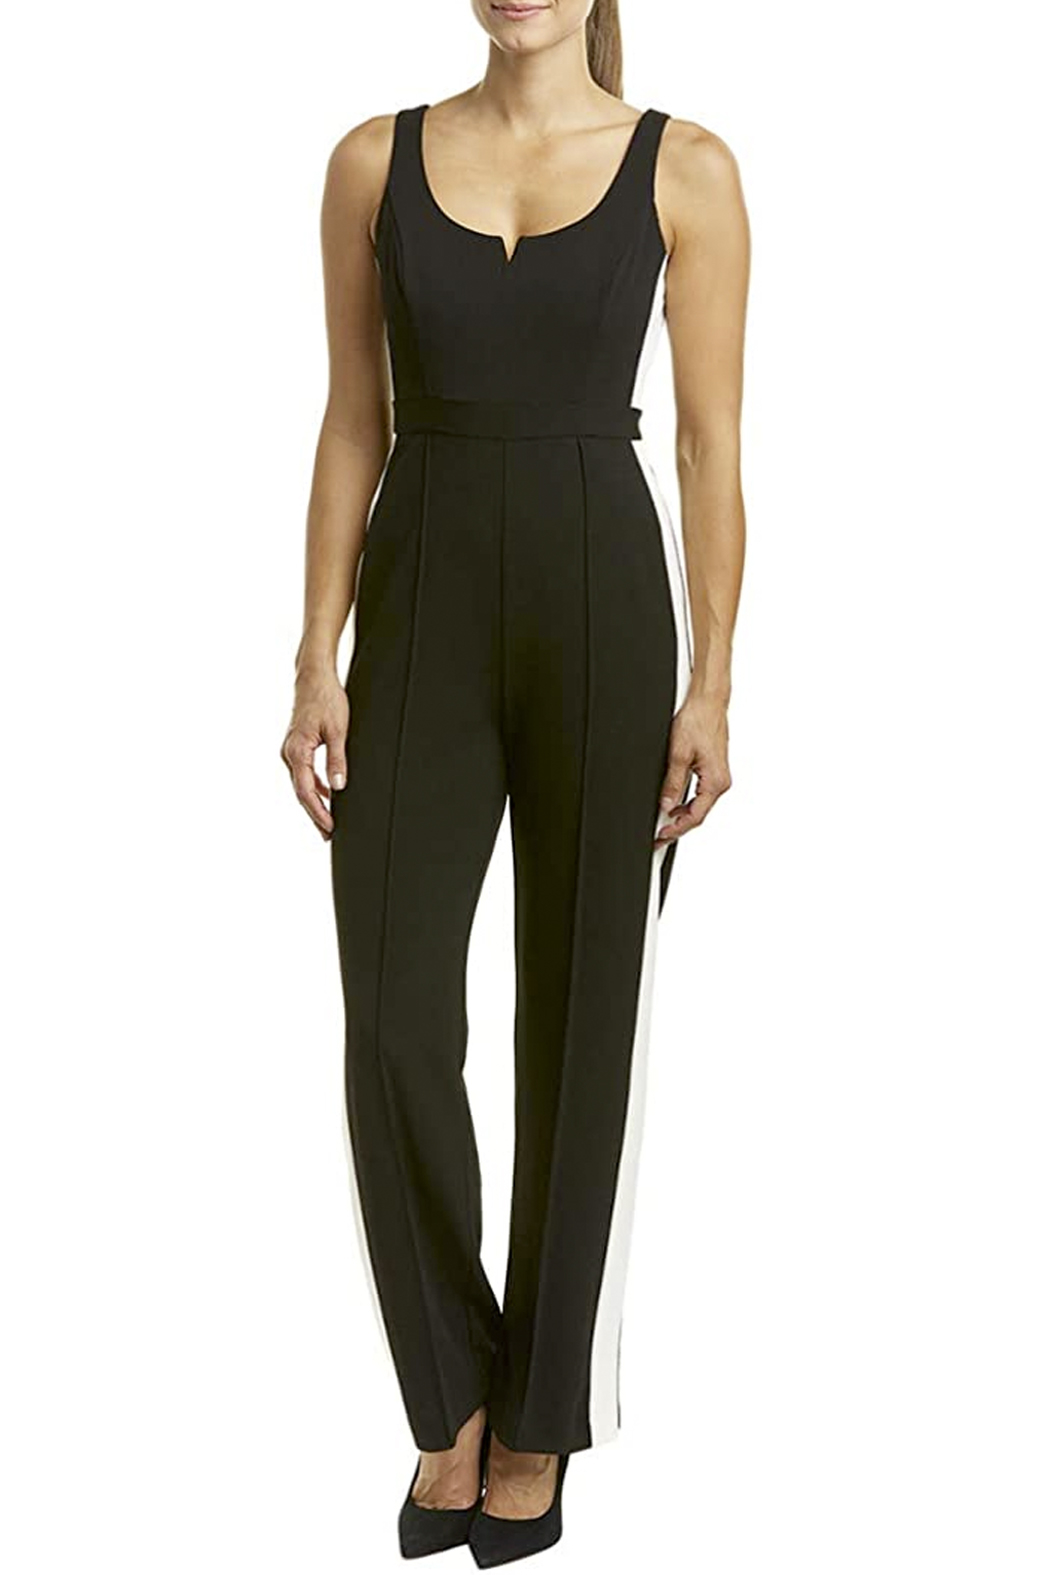 Donna Morgan Jumpsuit with White Side Stripes - Main Image